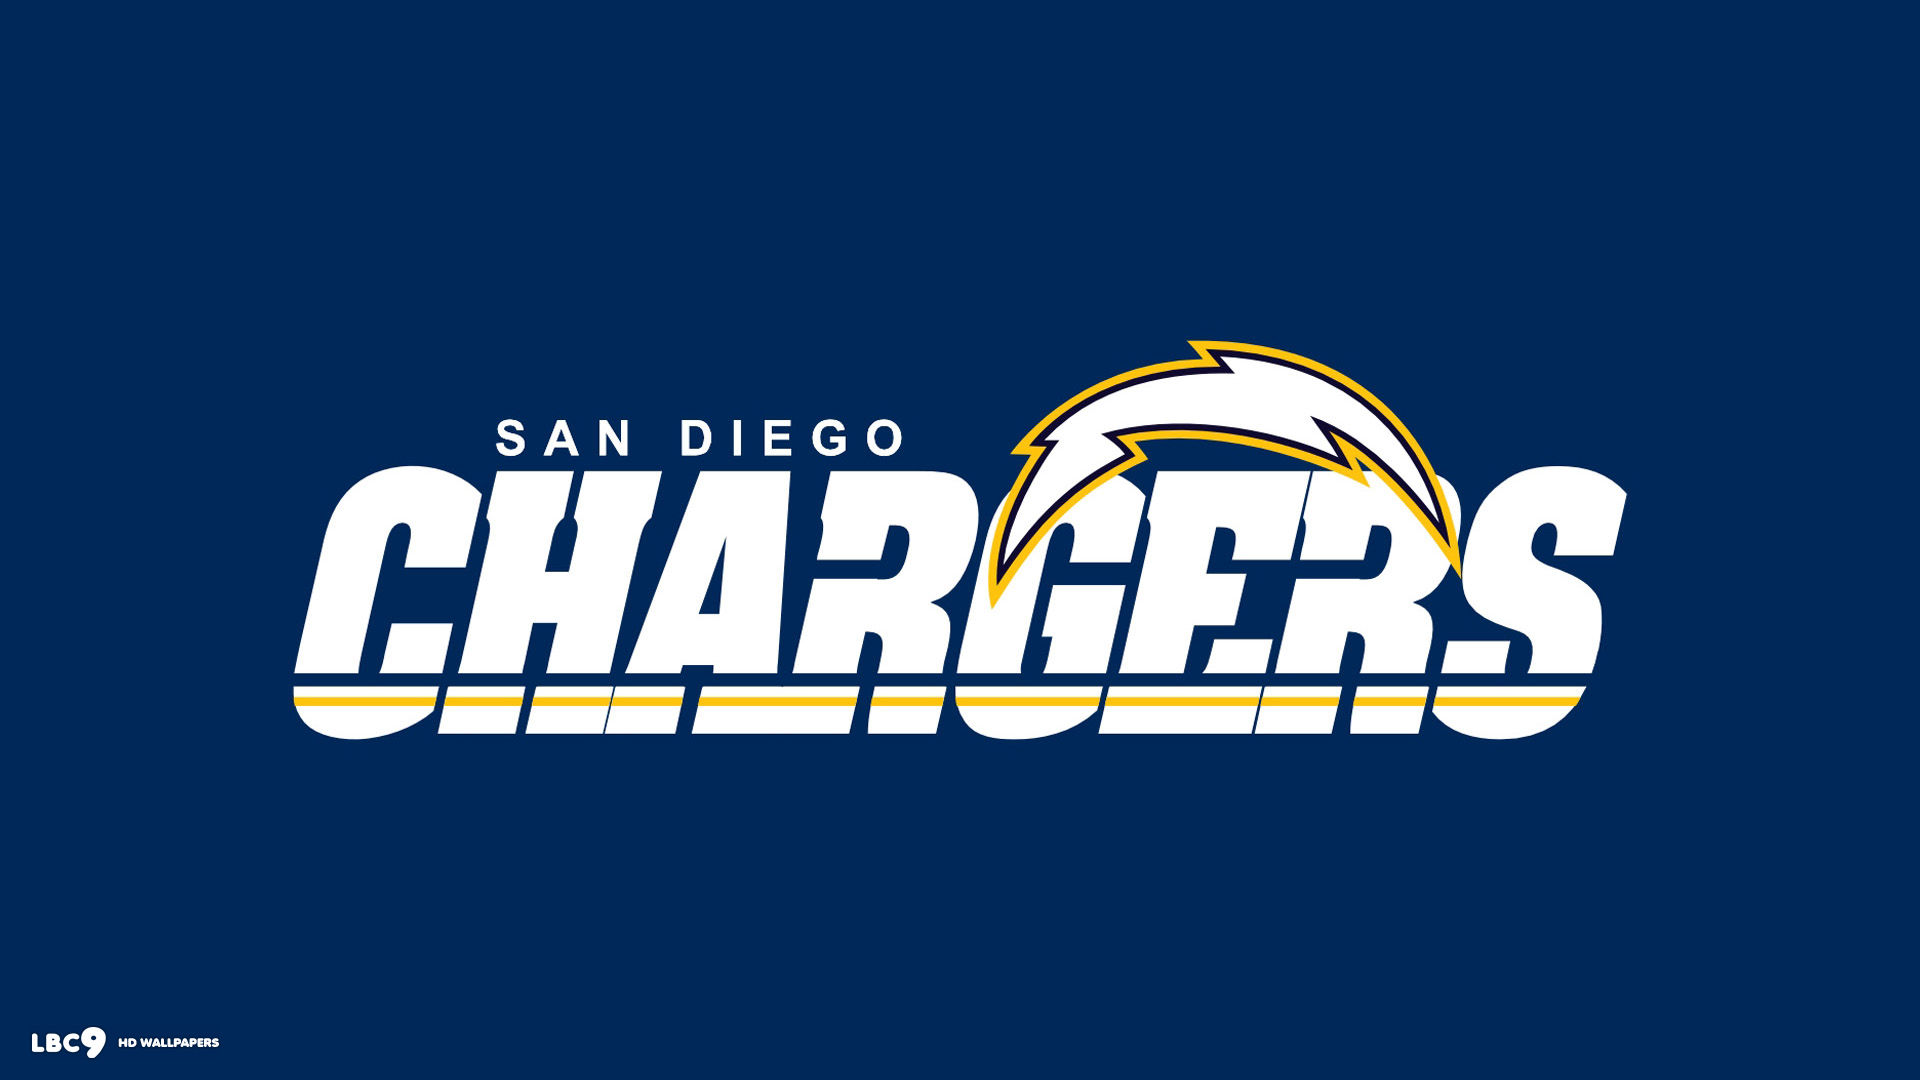 San Diego Chargers Wallpapers HD Wallpapers Early 1920x1080